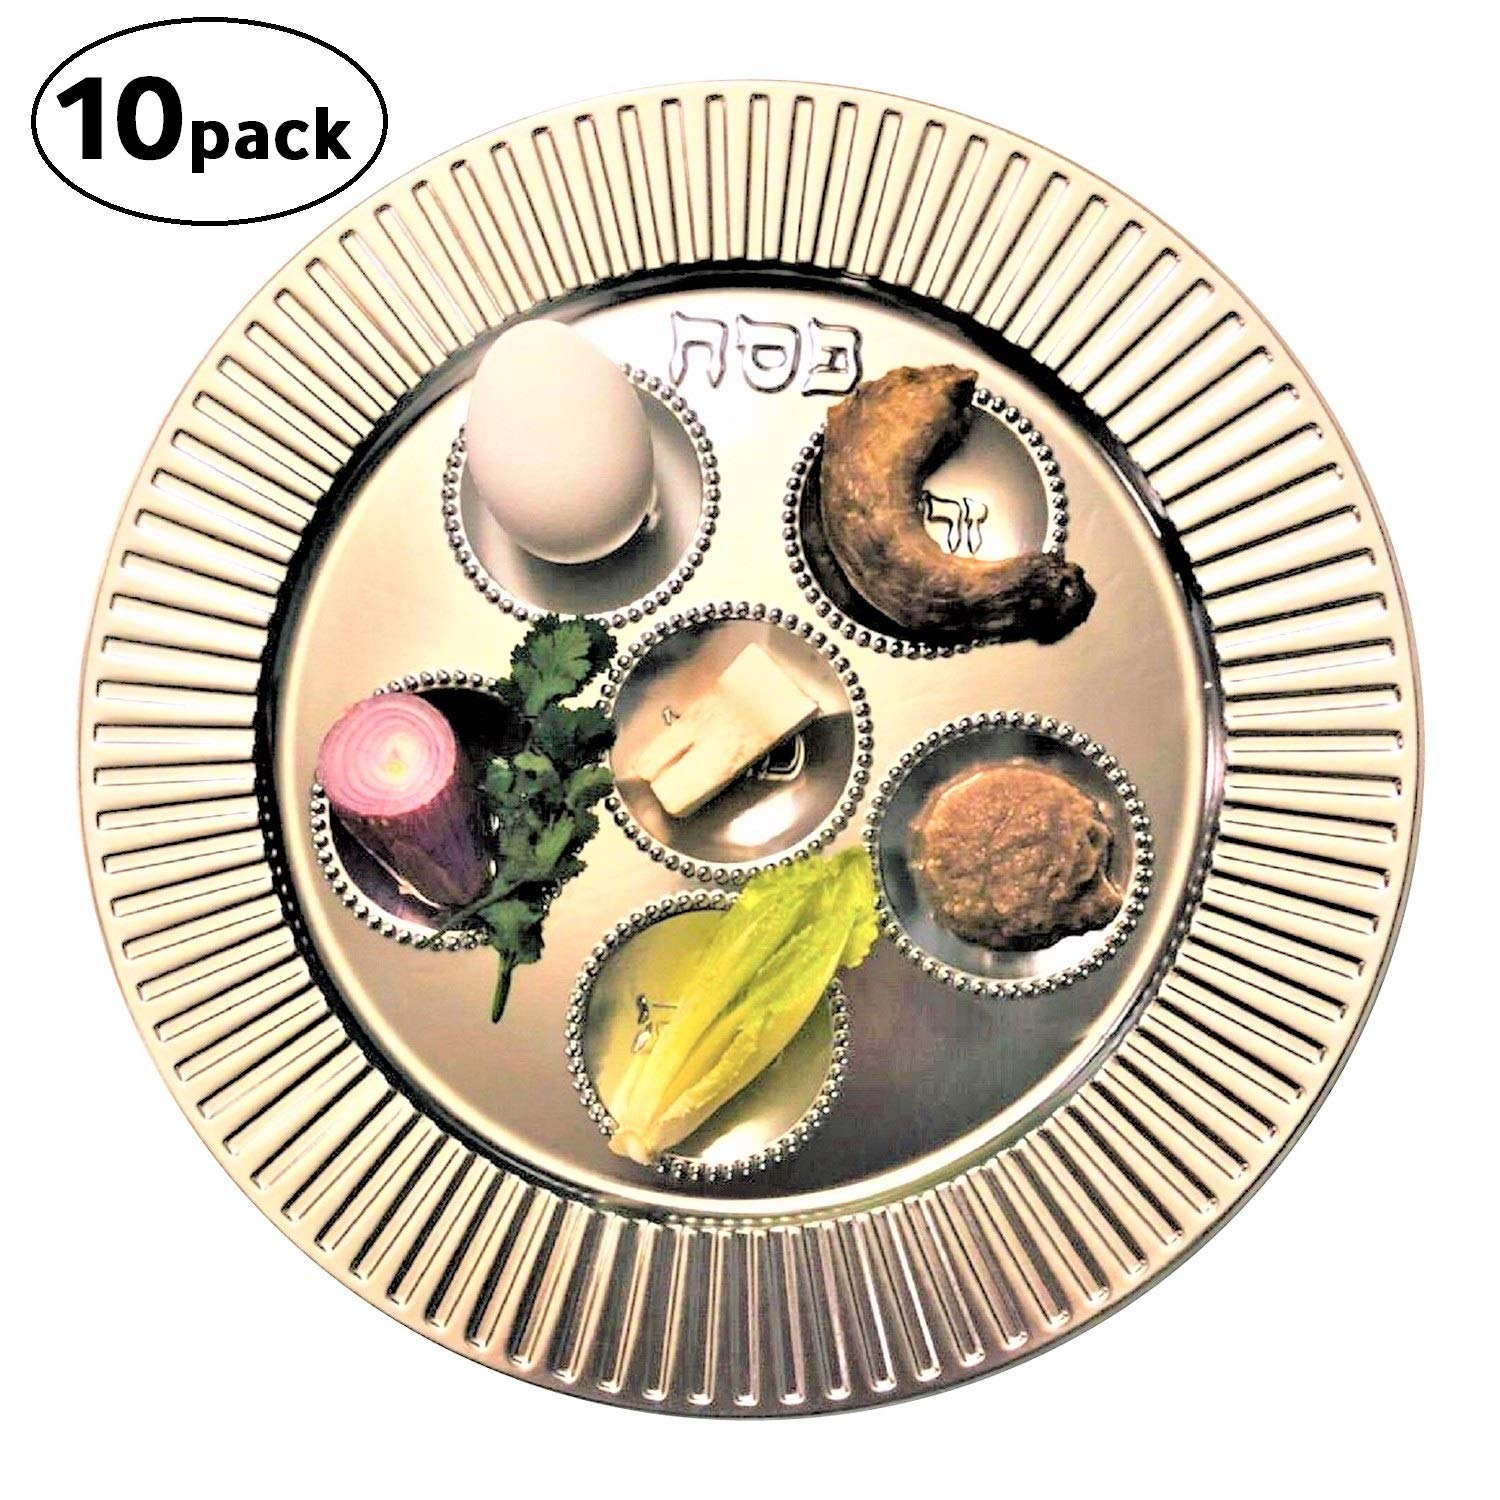 Passover Plastic Seder plate (10 pack) - 13'' Traditional Silver Disposable plates for Pesach Table.